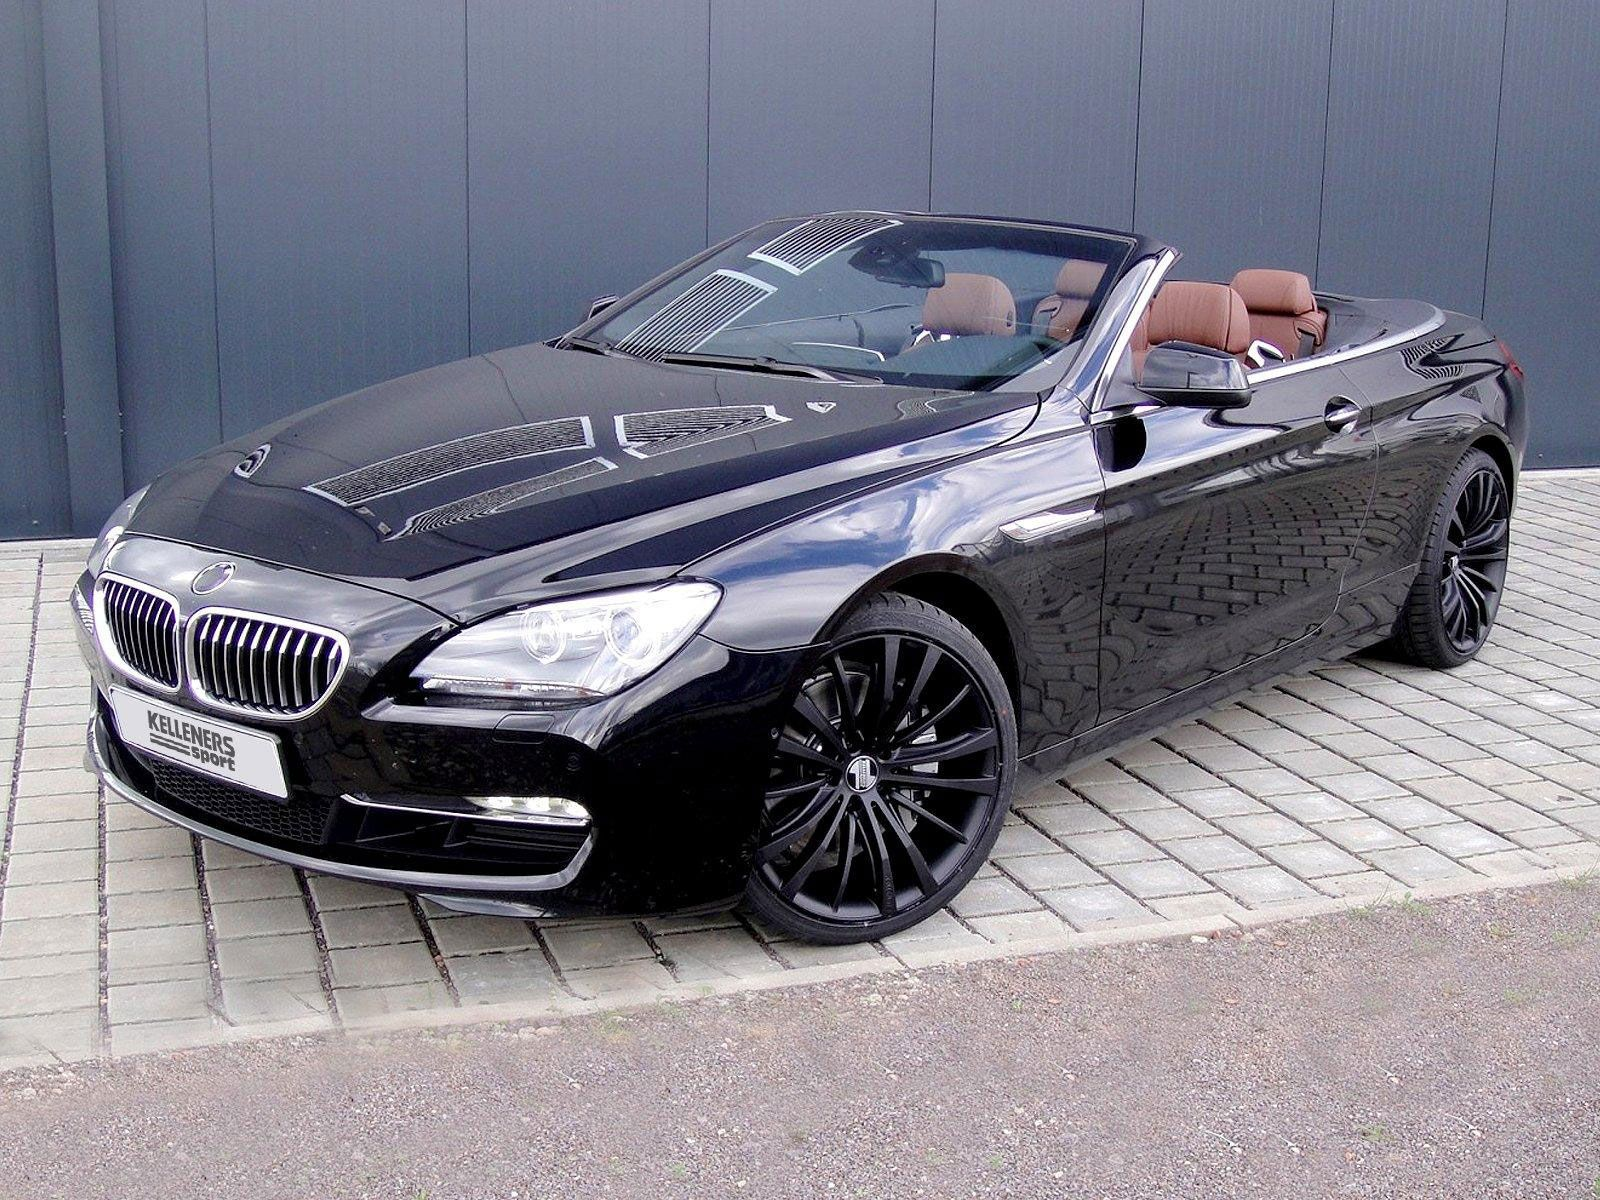 But Convertible Bmw 6 Series Convertible Sport Bmw 650i Cabrio But Really Any